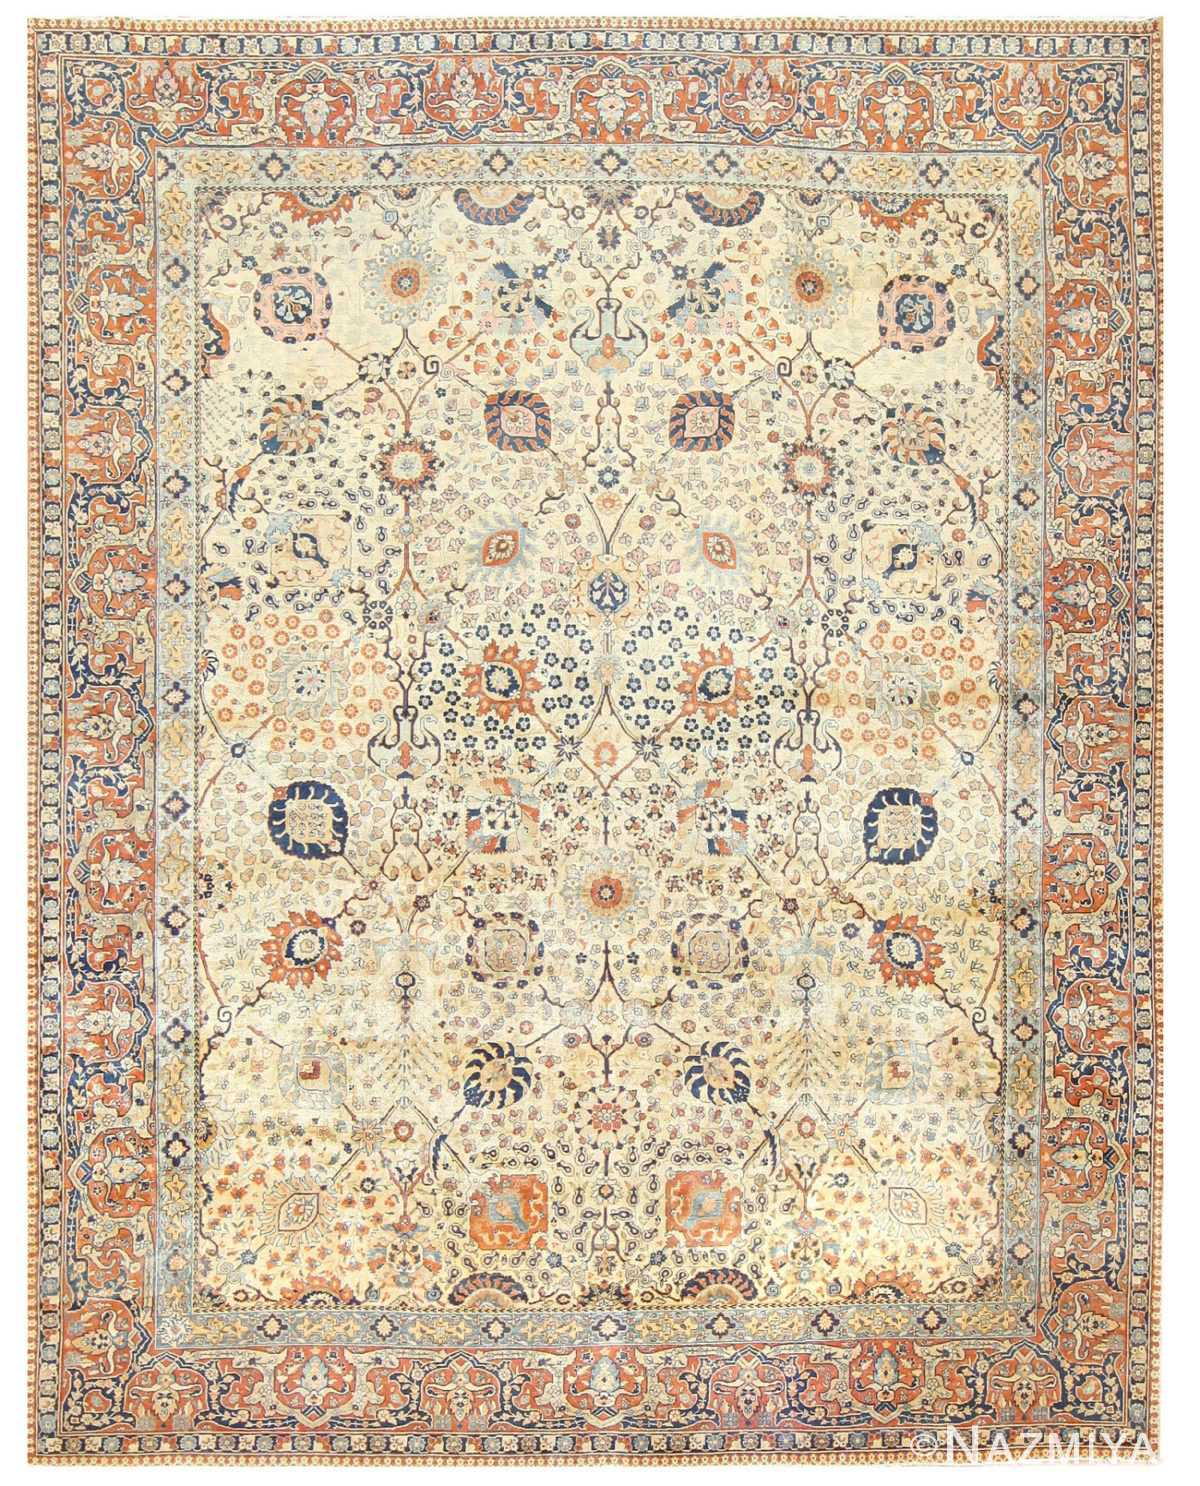 Antique Persian Tabriz Rug 50176 Detail/Large View